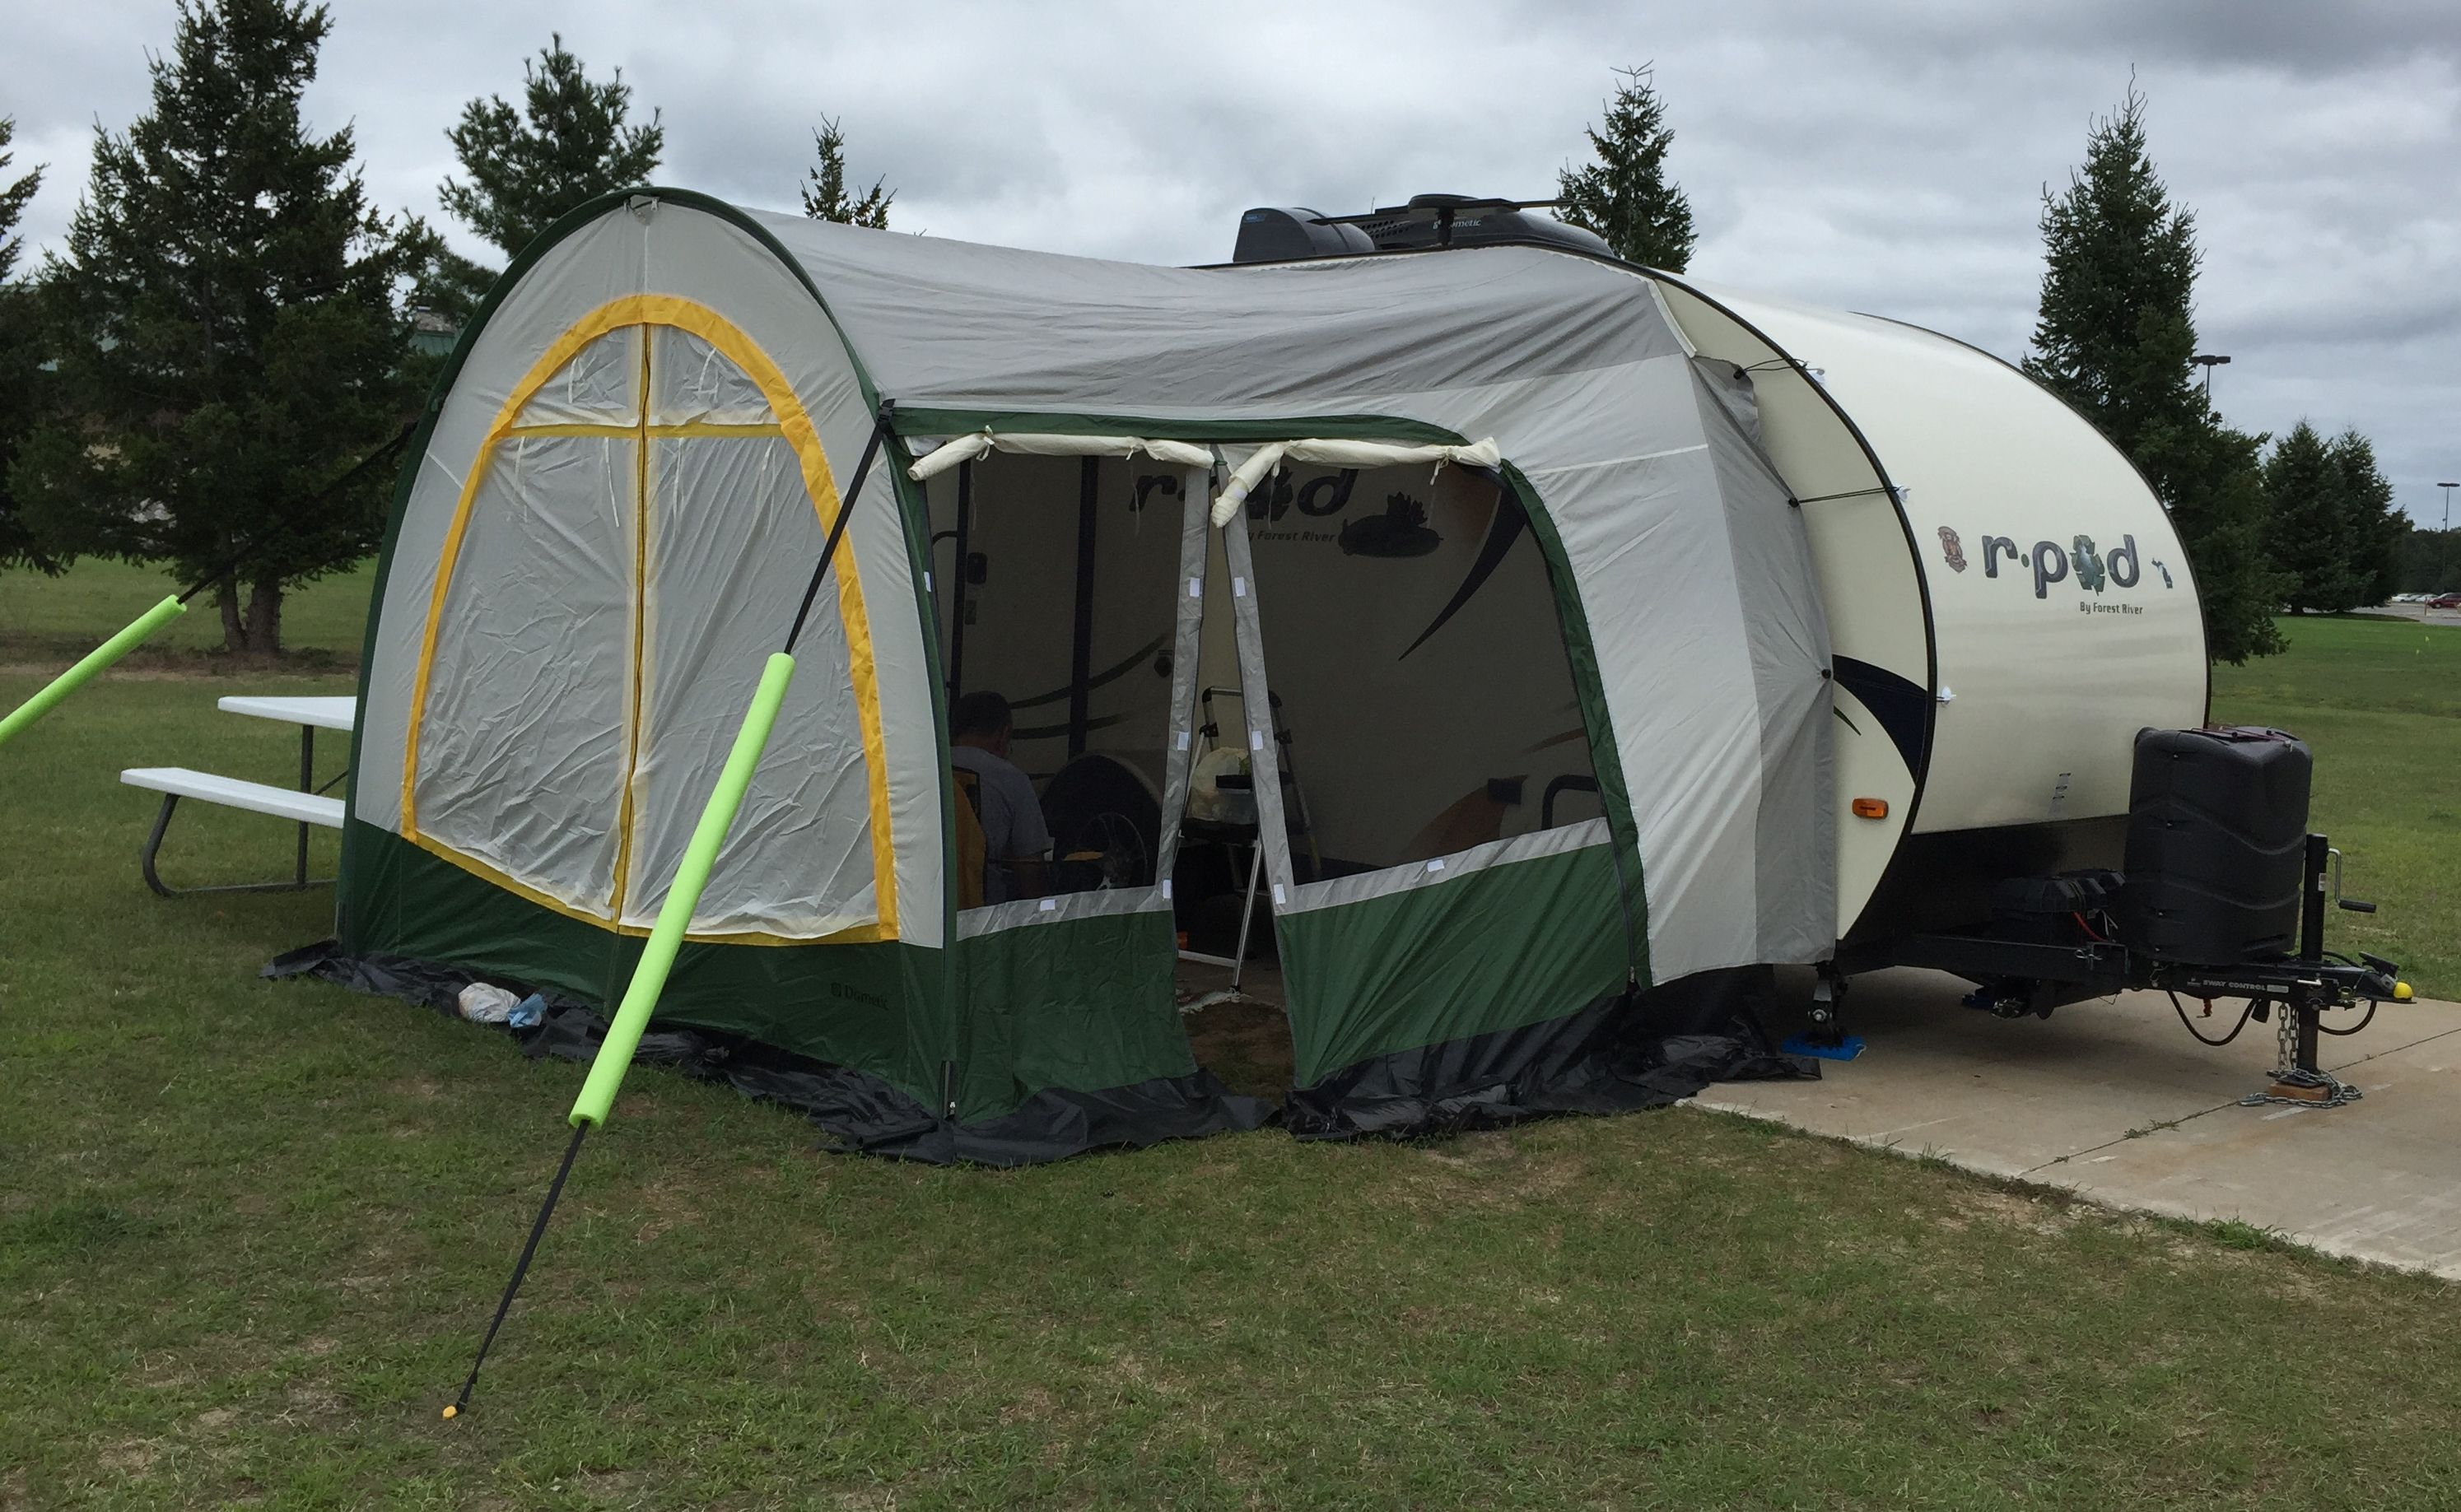 Pool Noodles Placed Over Tie Down Straps To Make Them More Visible R Pod 179 R Dome Pod Camper R Pod Travel Trailer Living